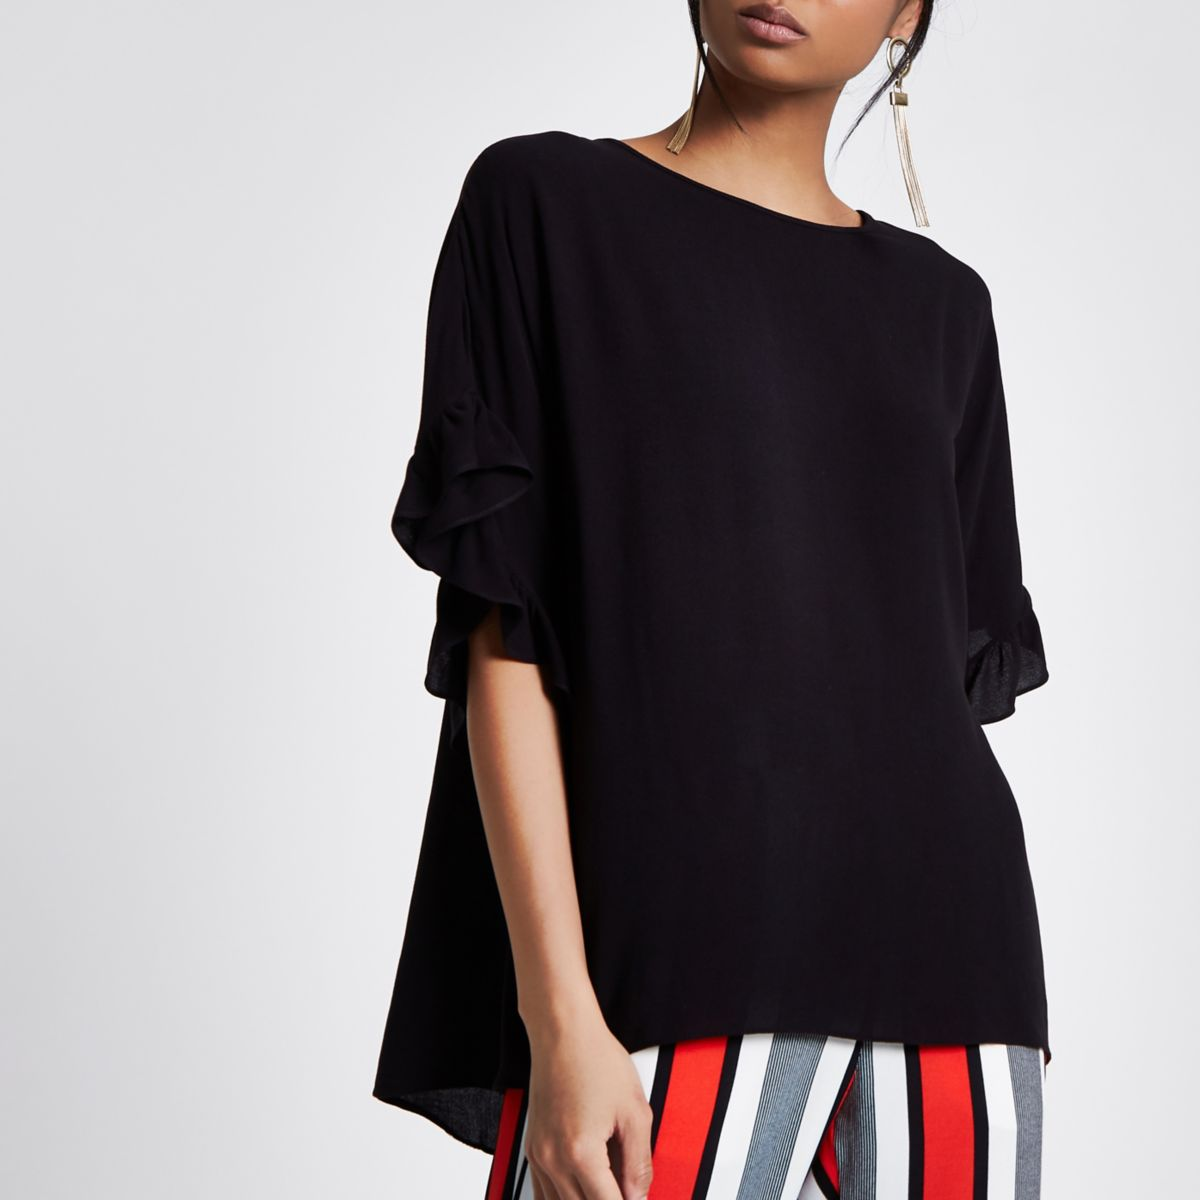 Black loose frill sleeve top